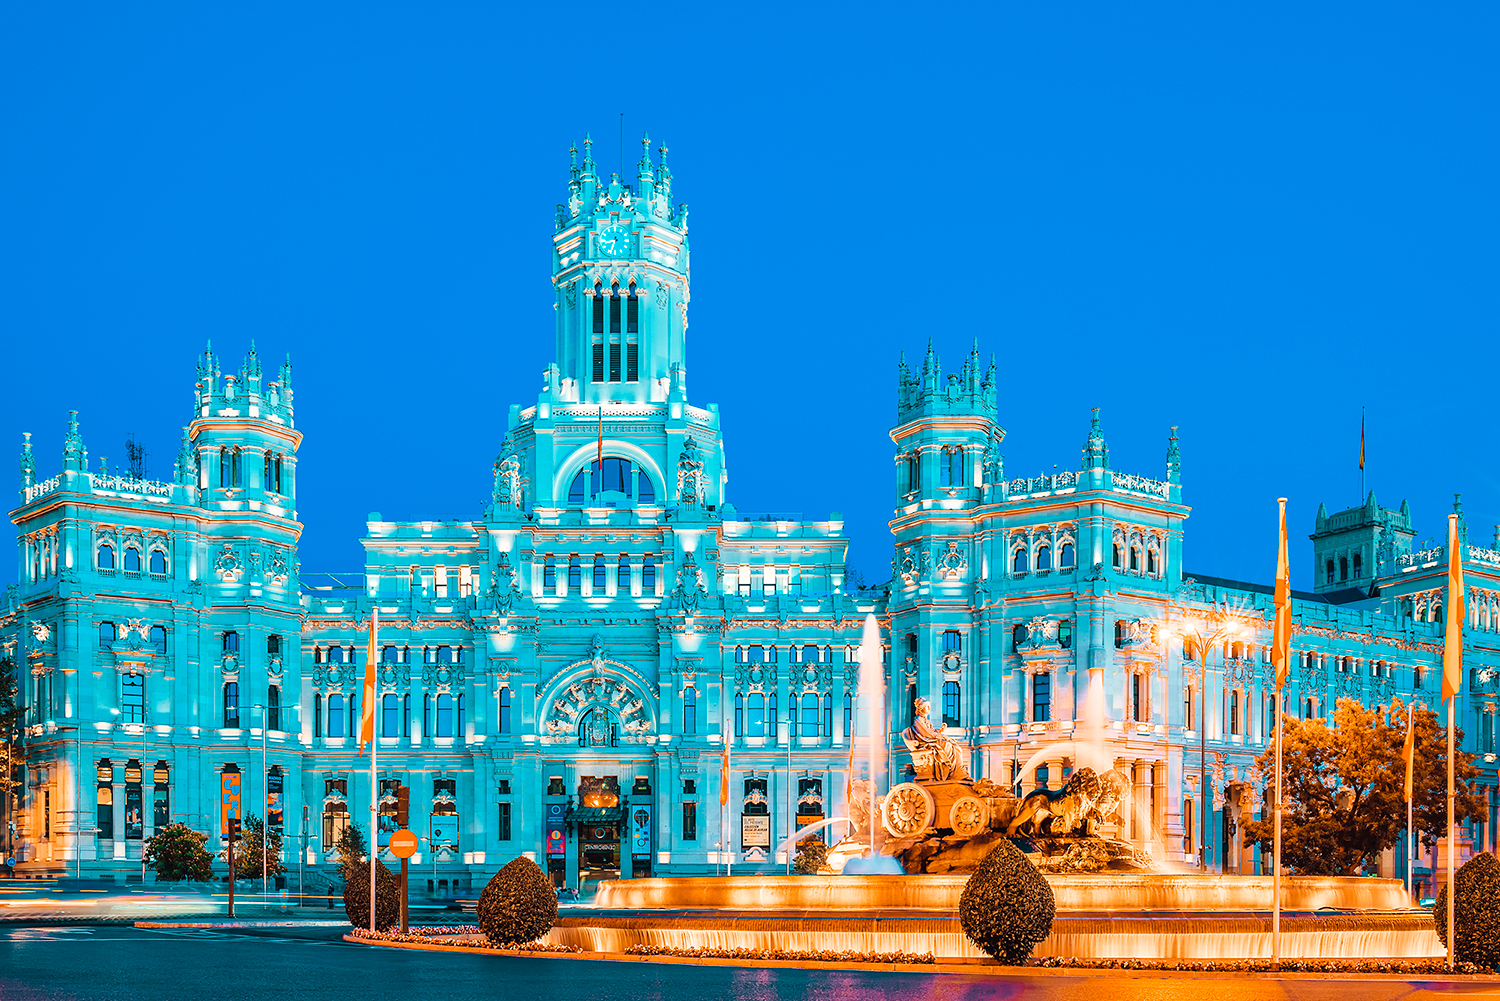 https://delacalle.eu/wp-content/uploads/2021/01/plaza-cibeles-by-night-madrid-spain.jpg